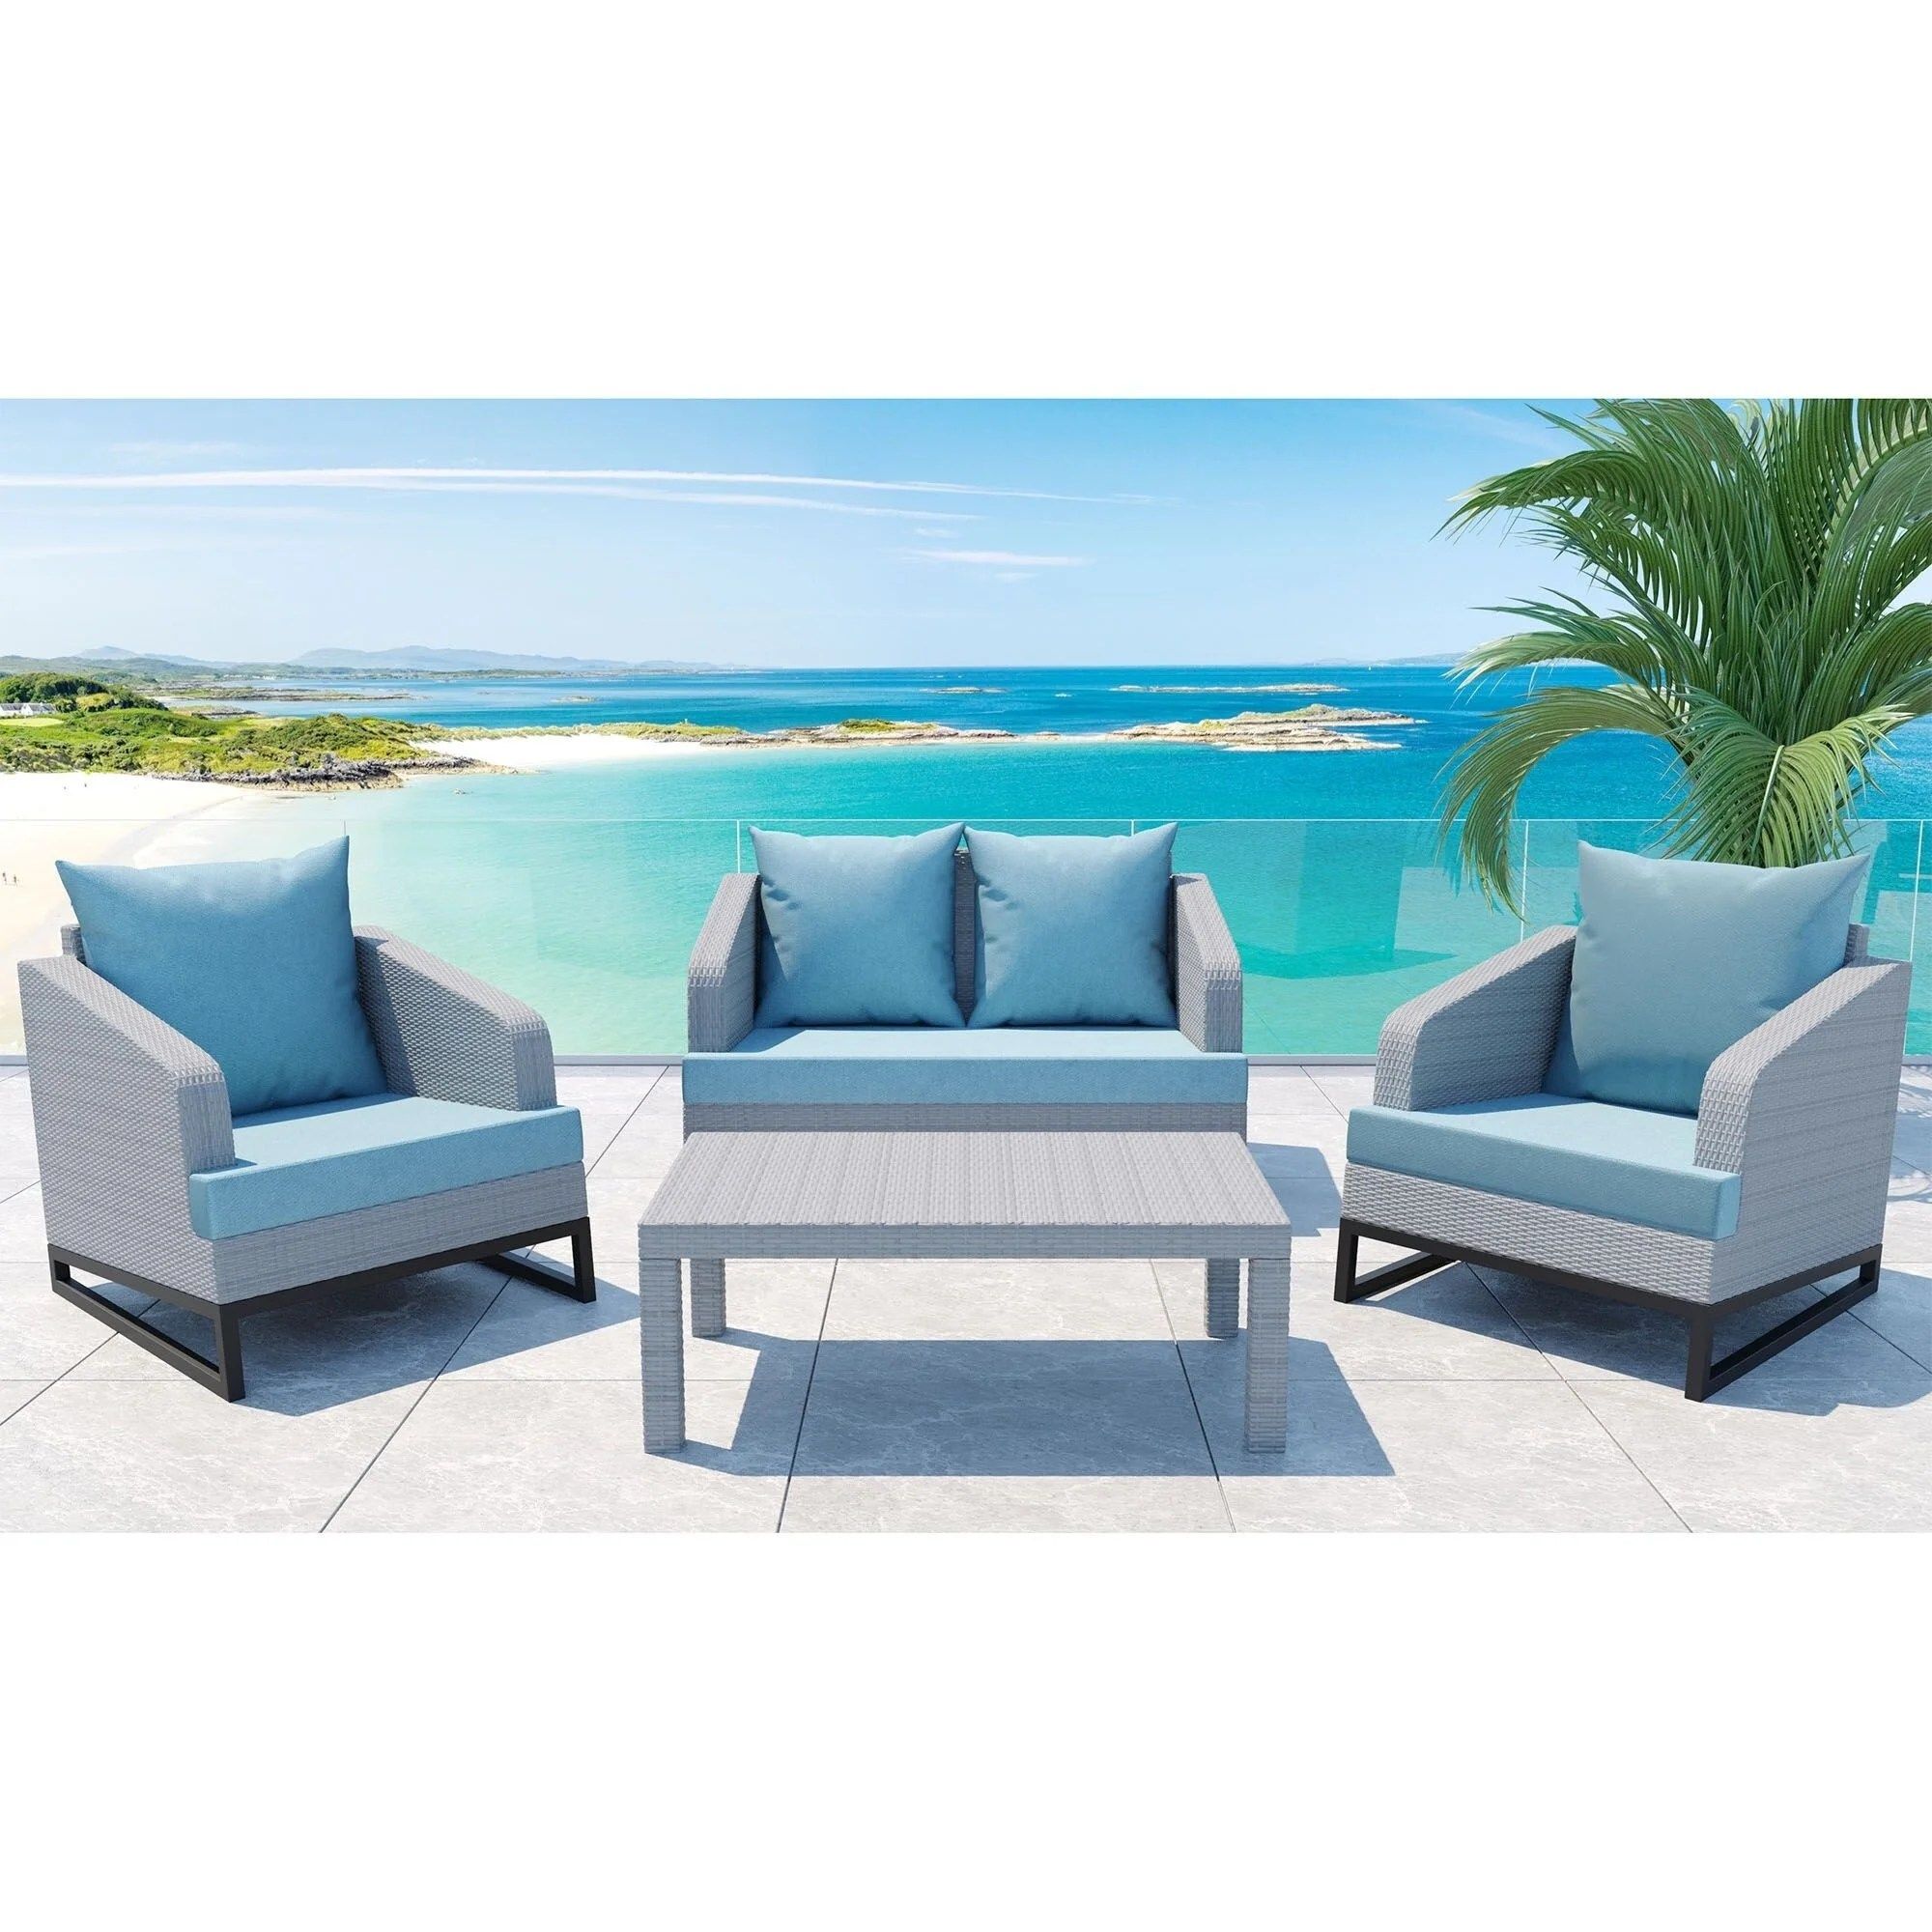 comal 4 piece outdoor patio seating set by gardennaire 2x club chairs loveseat coffee table